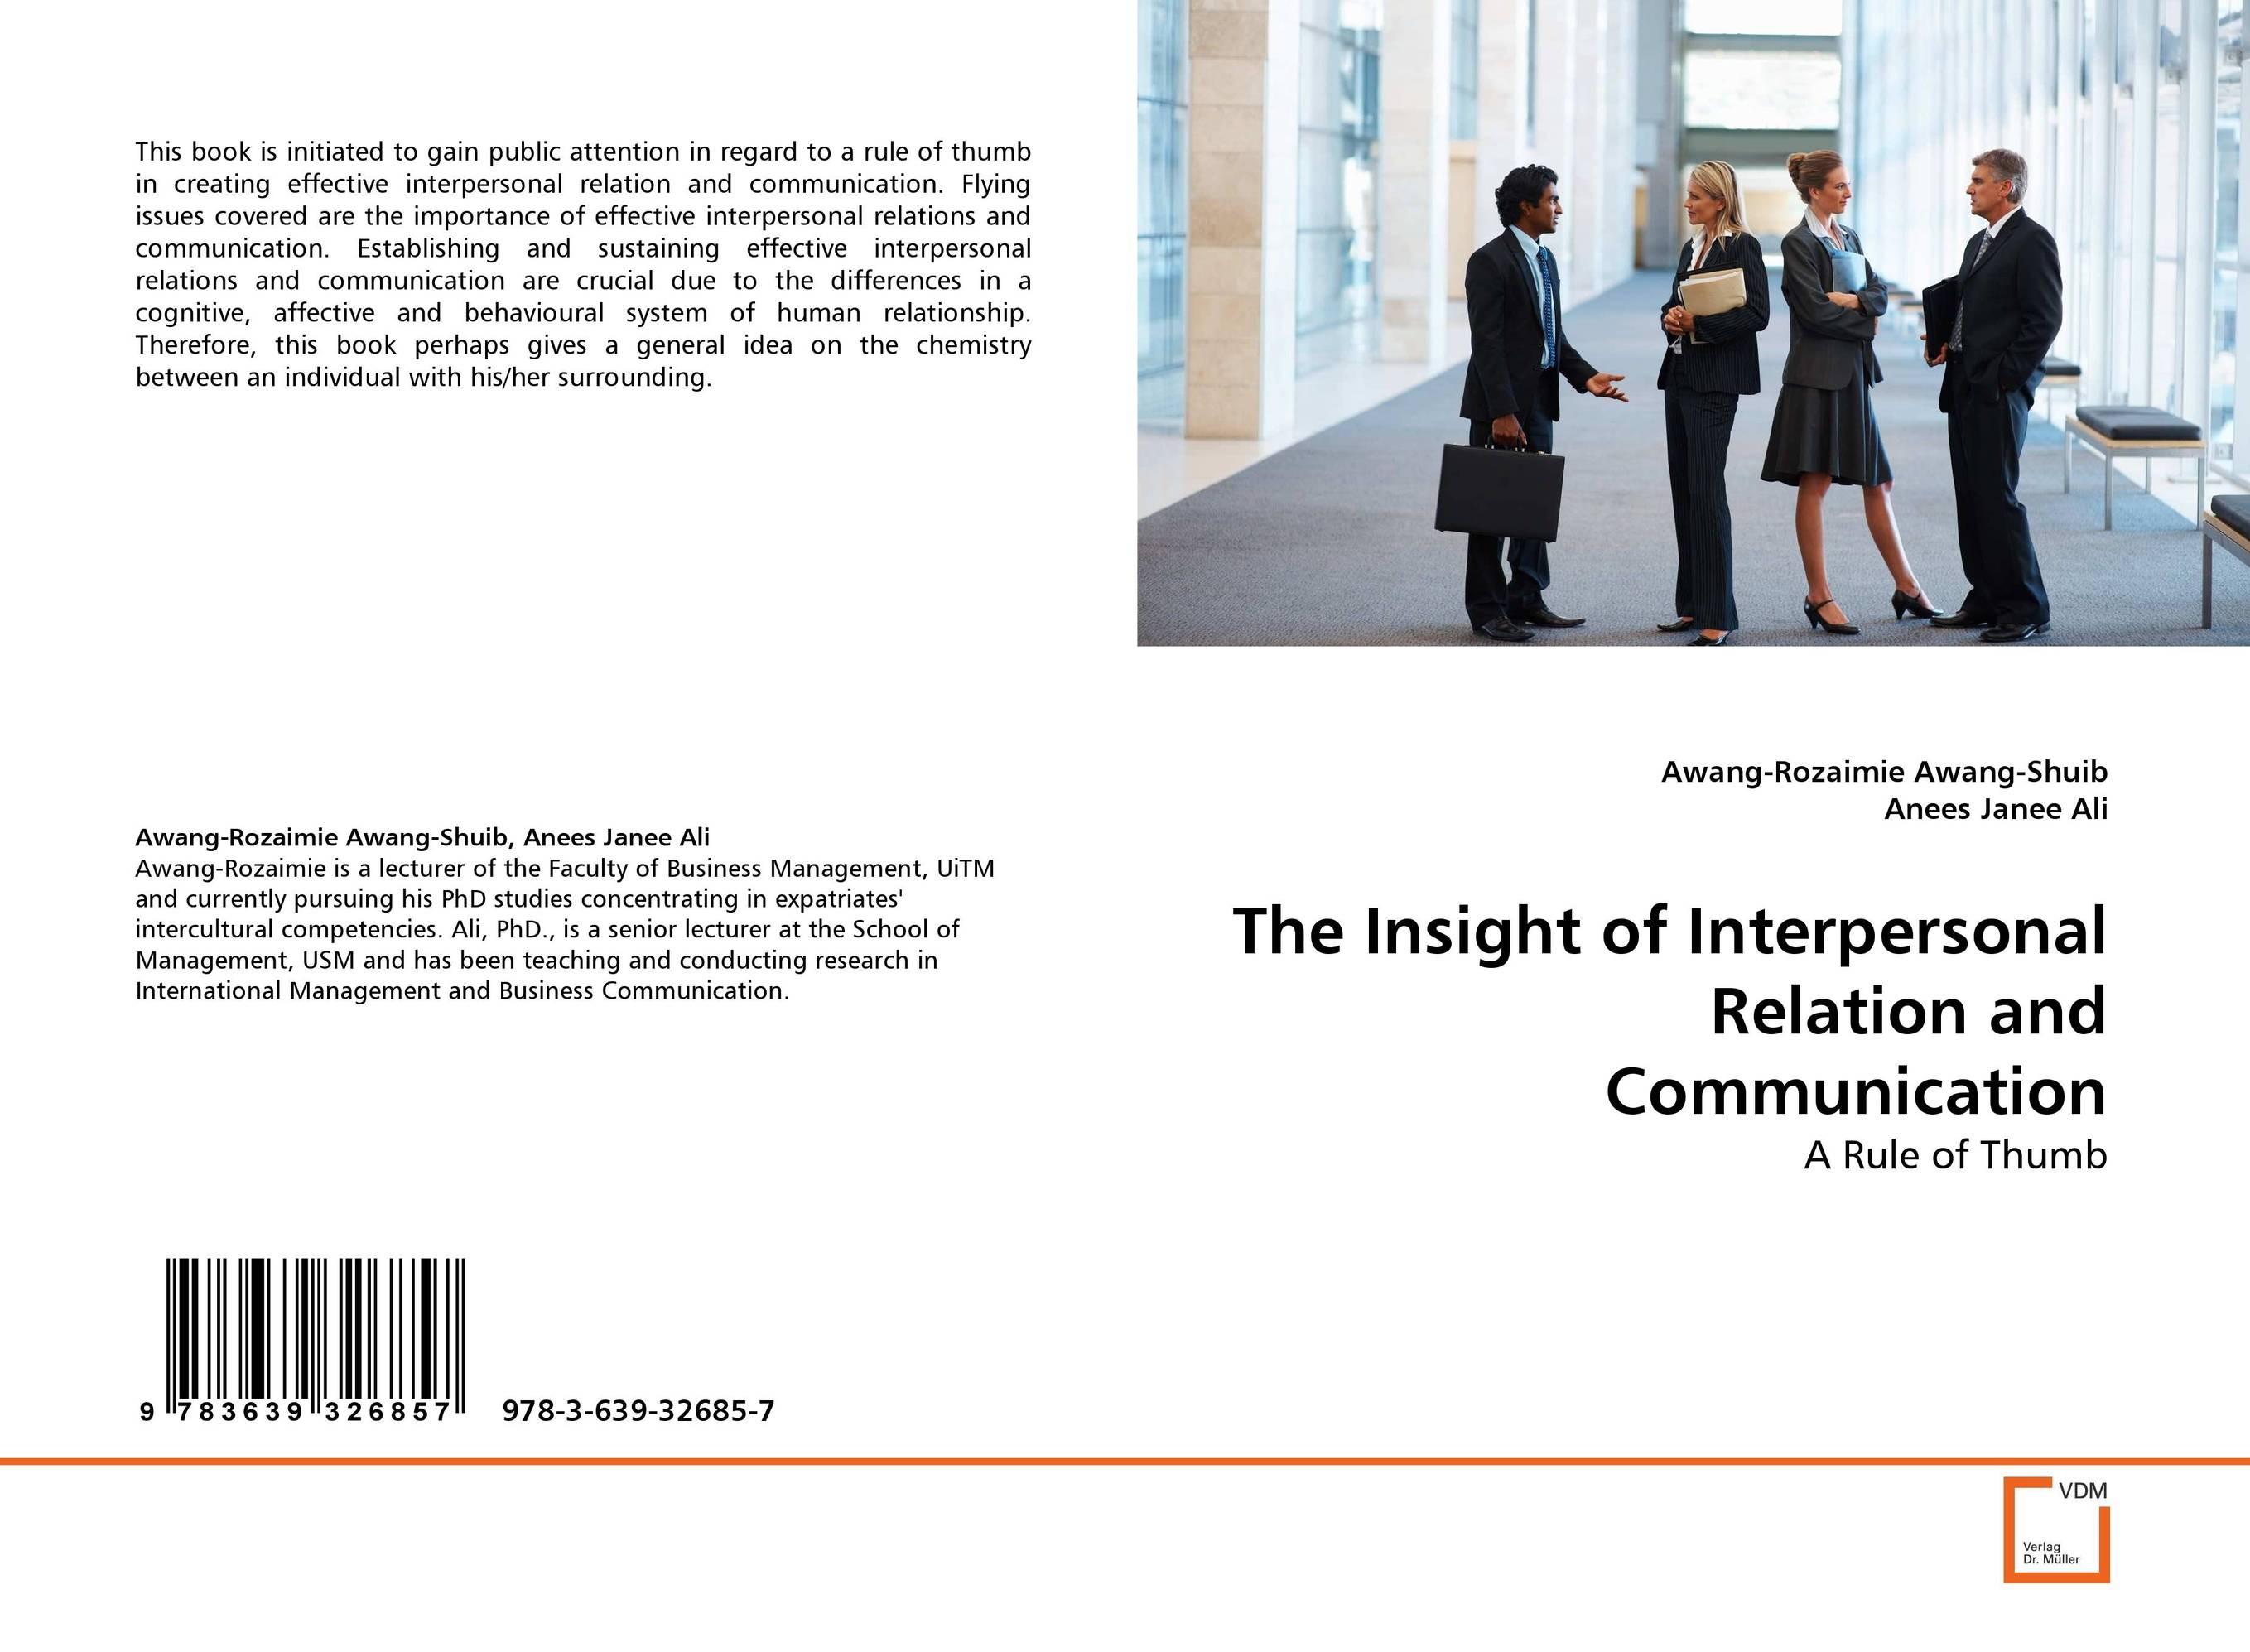 smooth interpersonal relation Research outlines six major categories or constructs of school climate: safety, teaching and learning, interpersonal relationships, institutional environment, social.